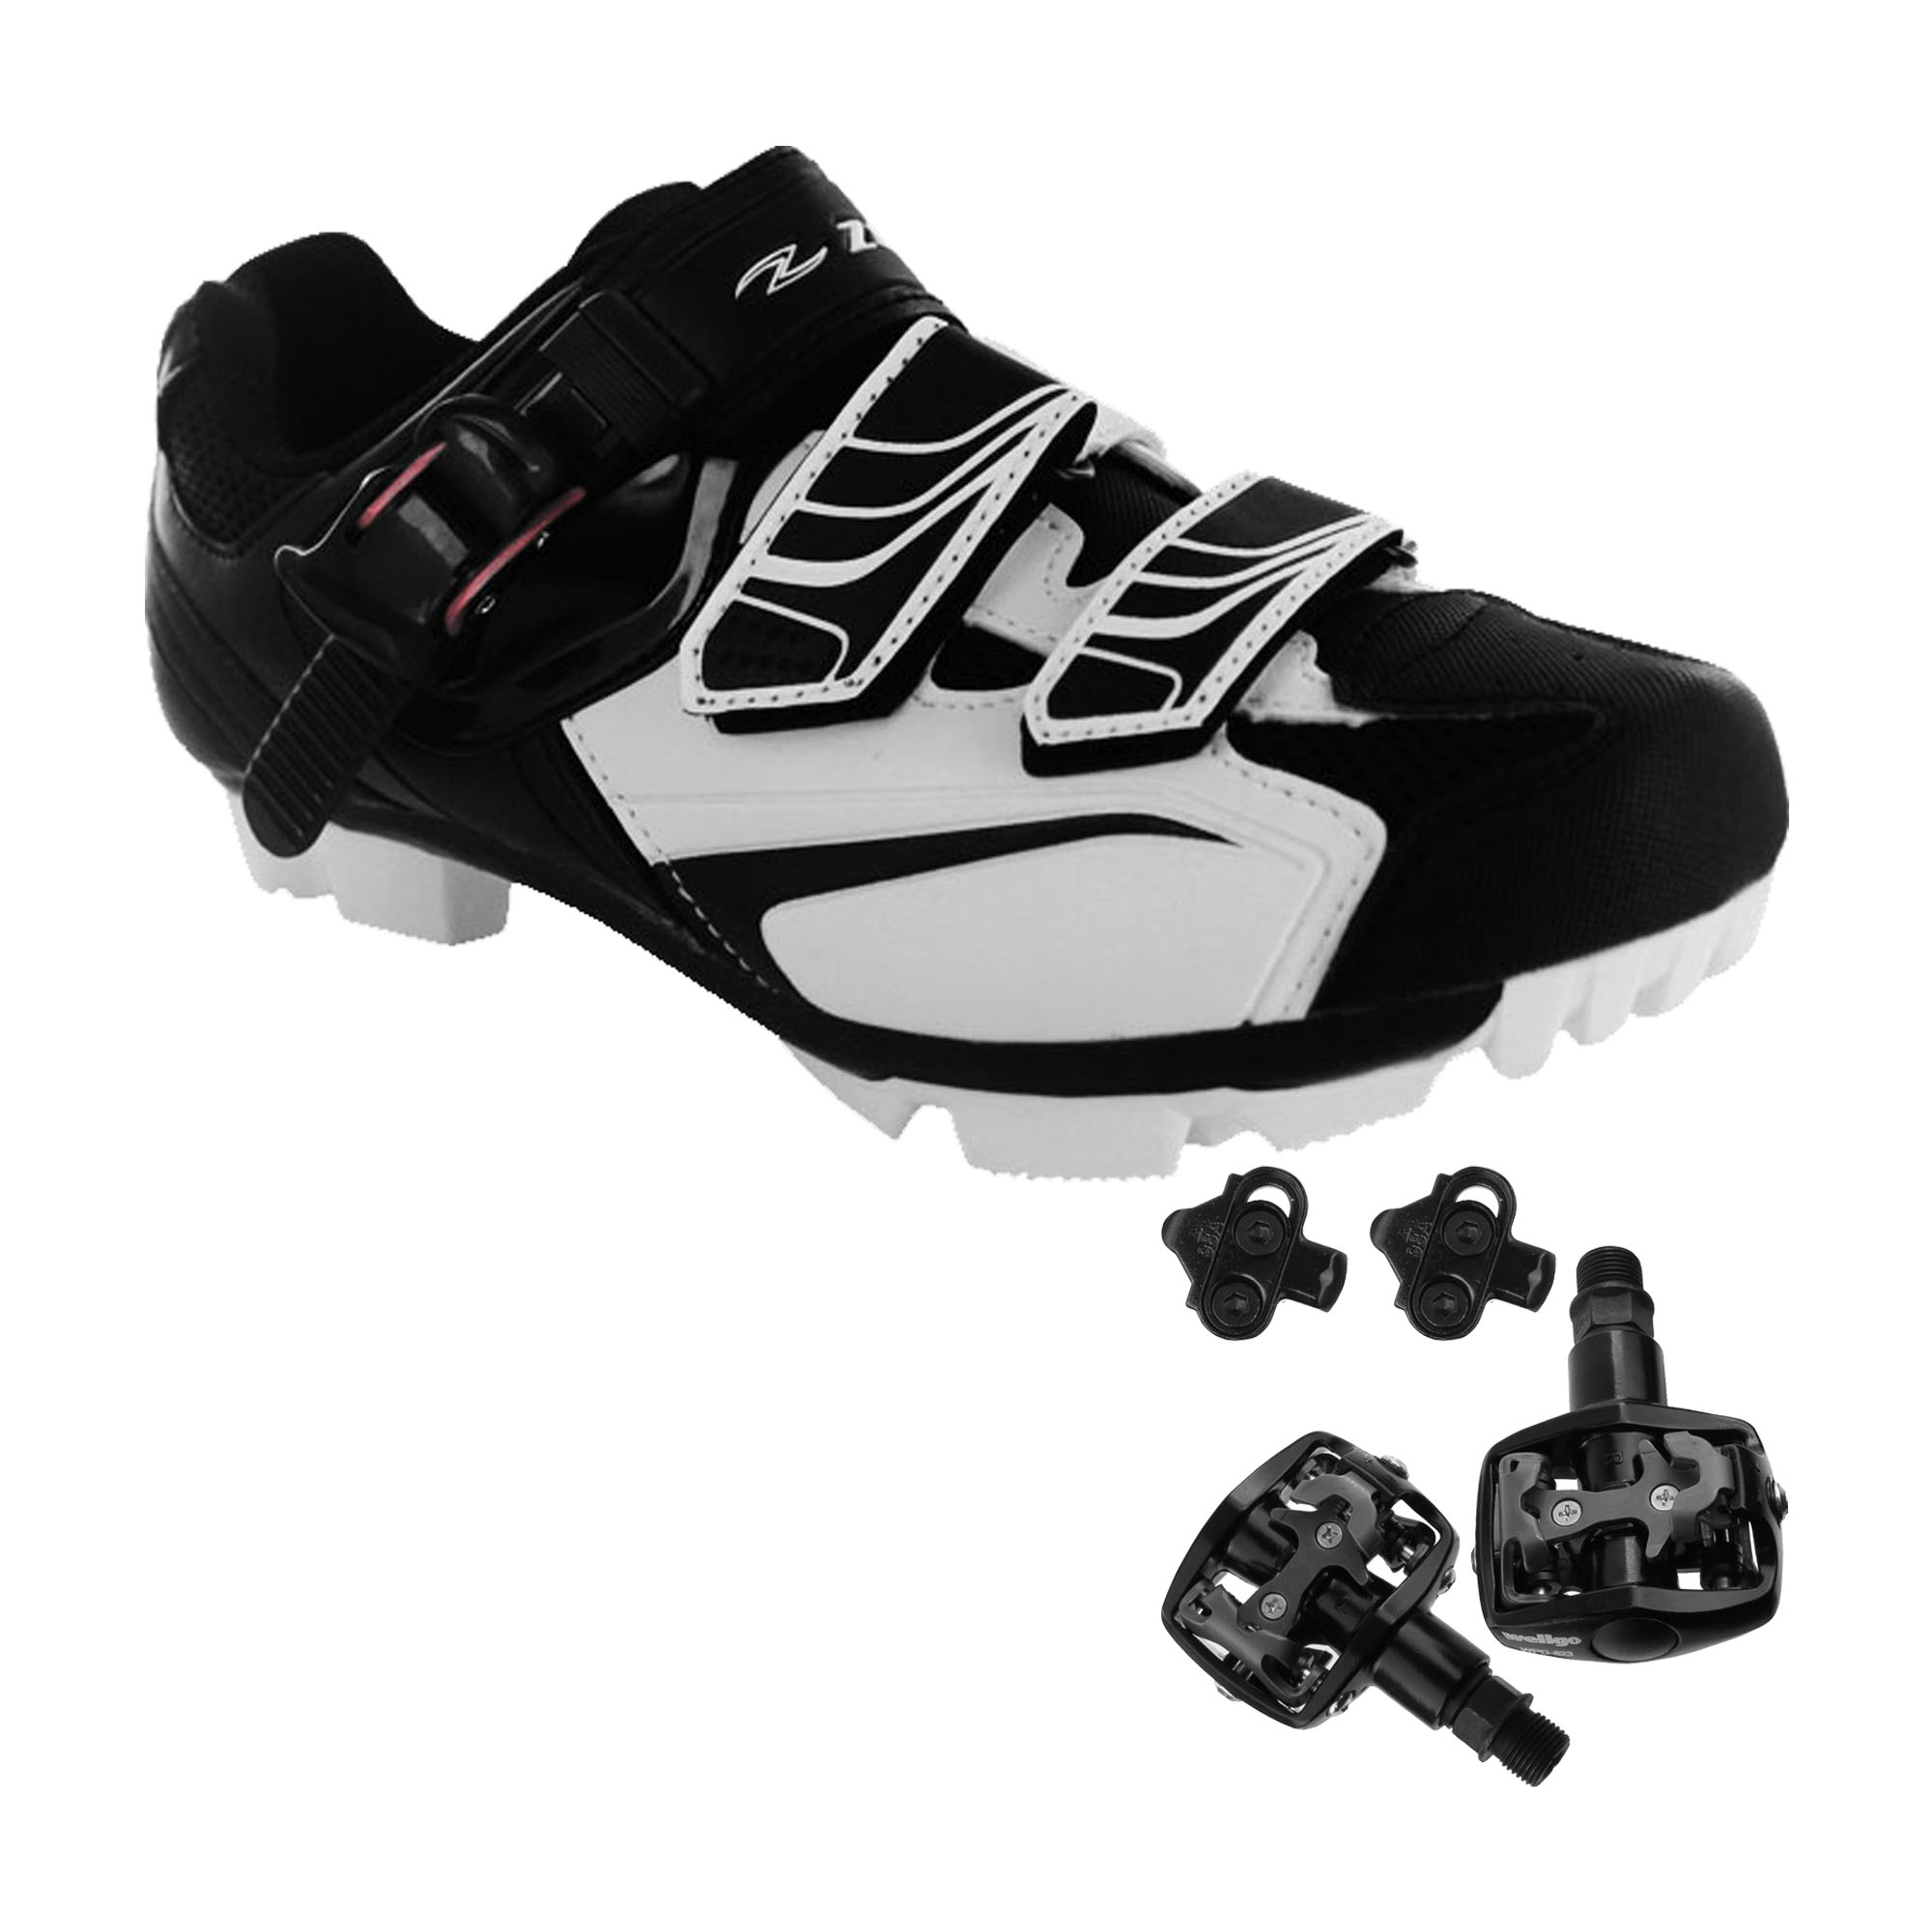 e306dbea3 Zol Trail Plus MTB and Indoor Cycling Shoes Pedals   Cleats Bundle ...